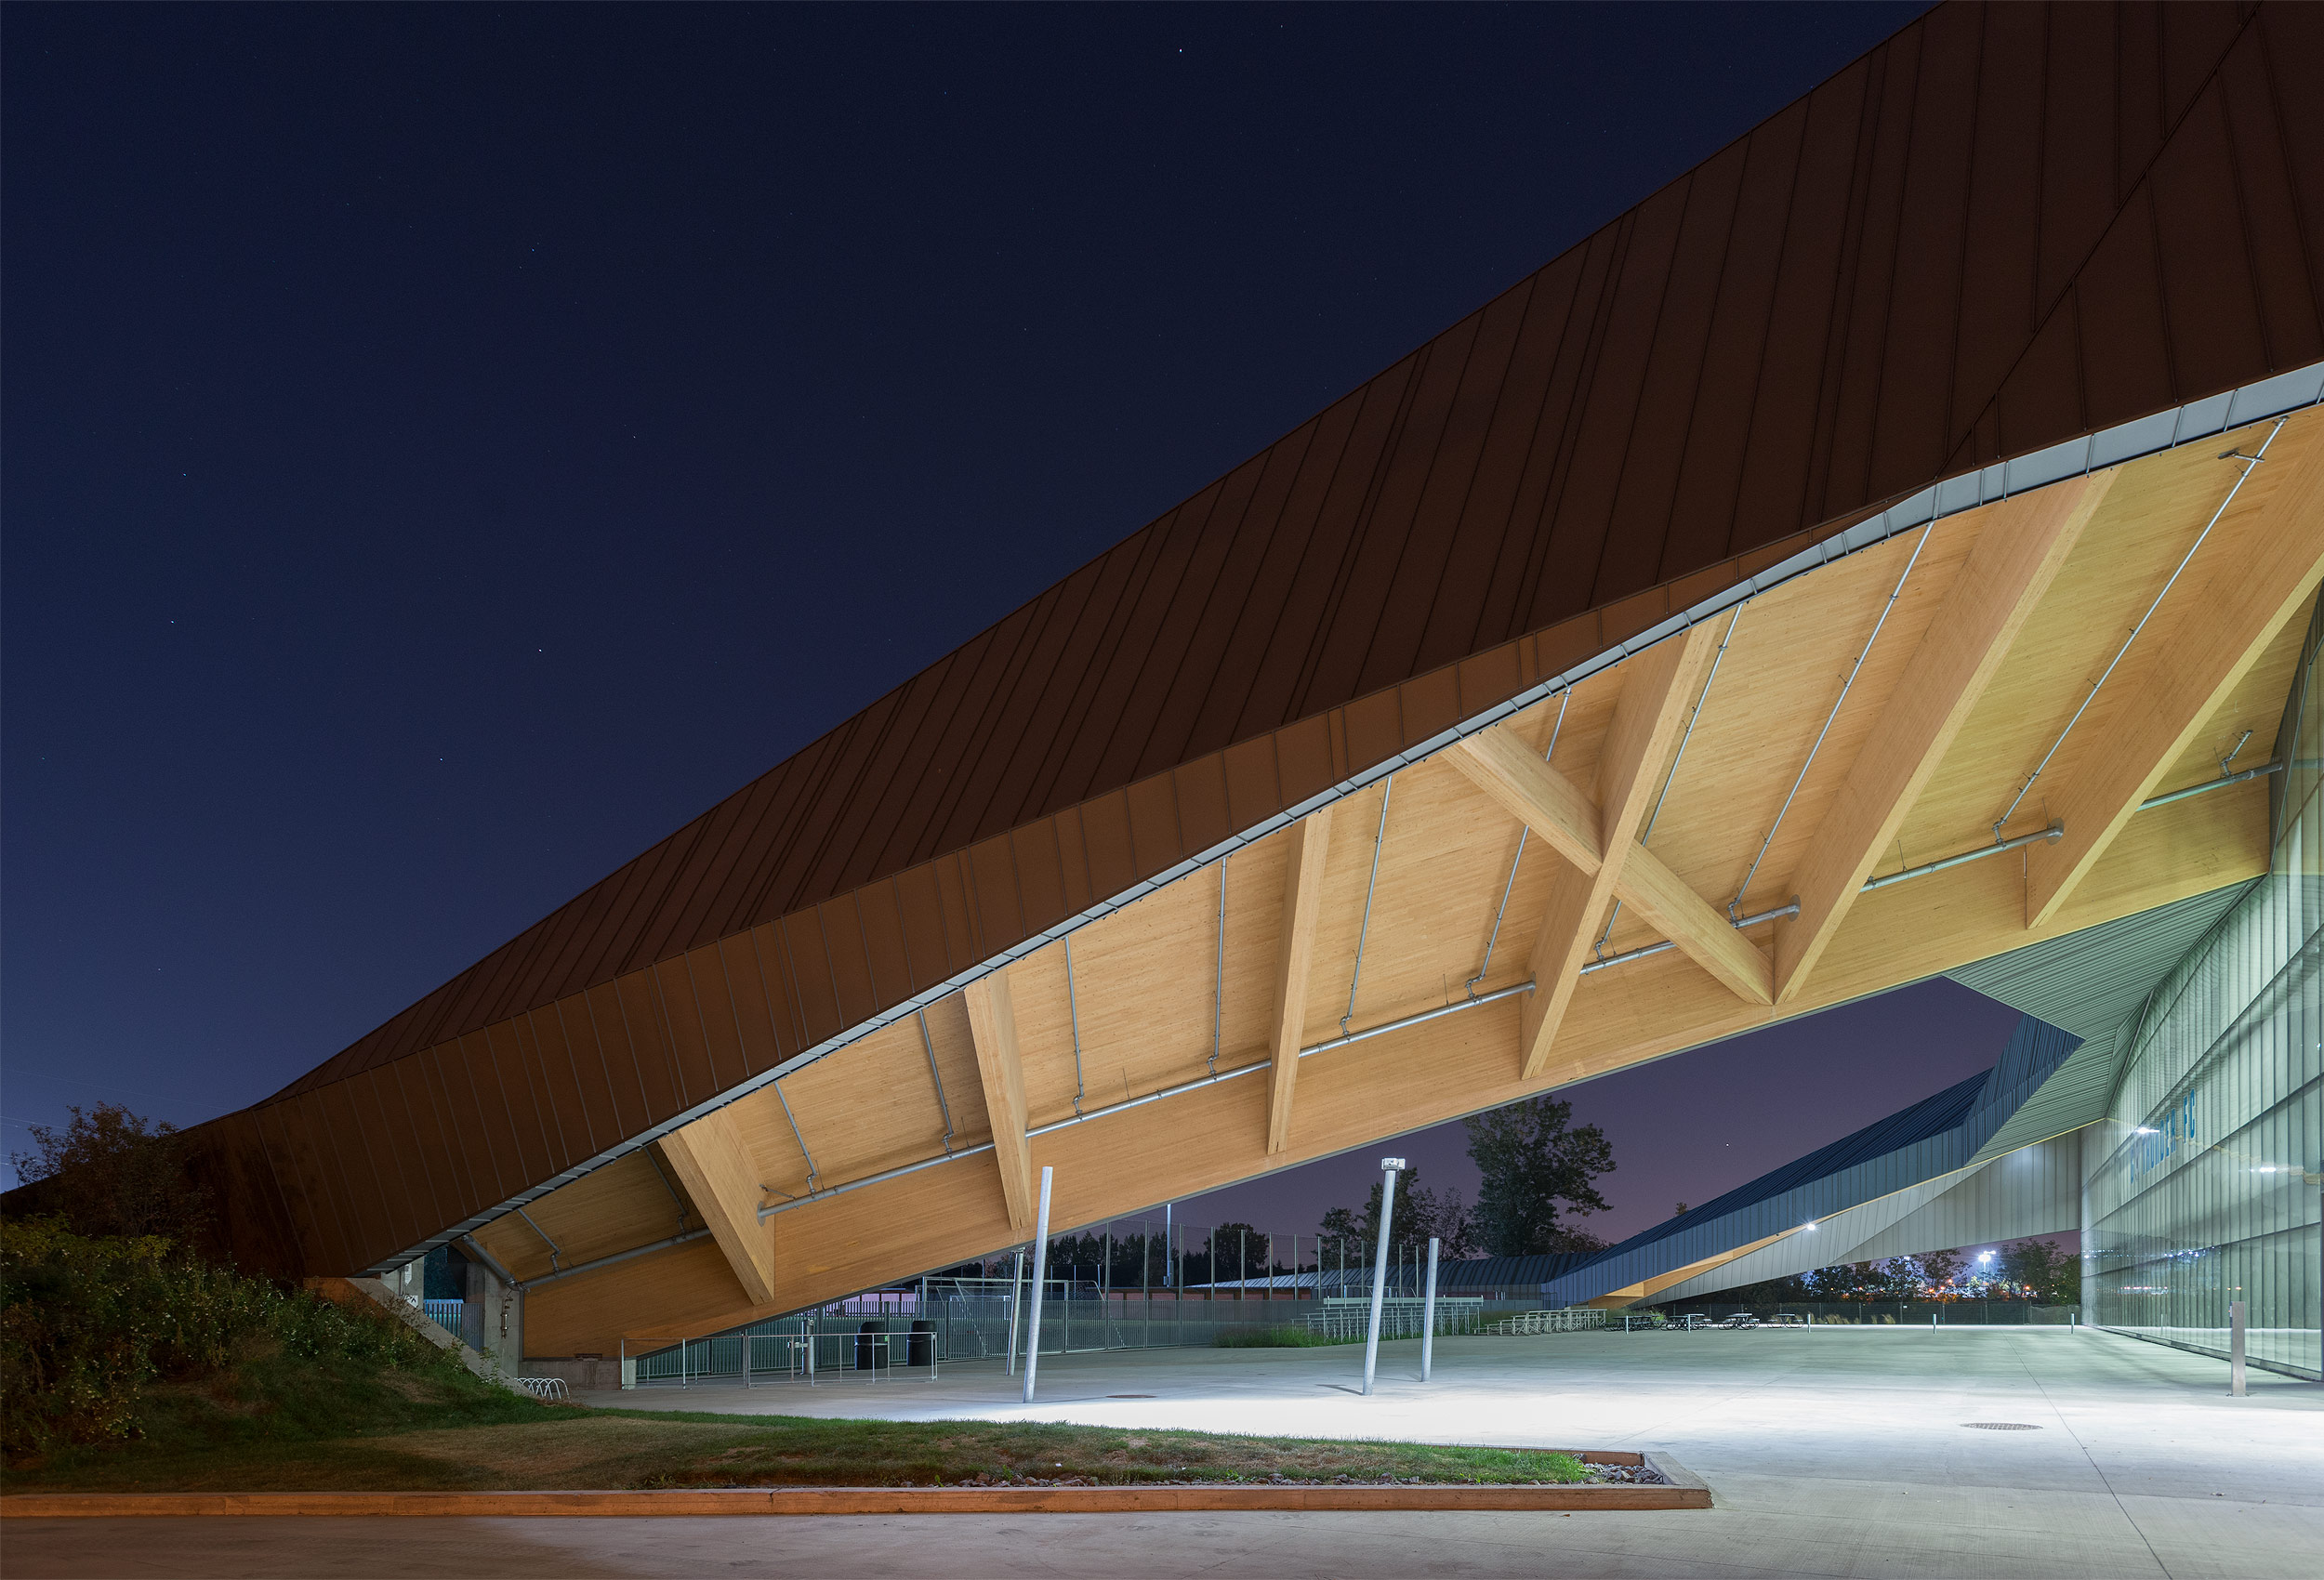 Montreal Stadium at night  by architectural photographer Kristopher Grunert